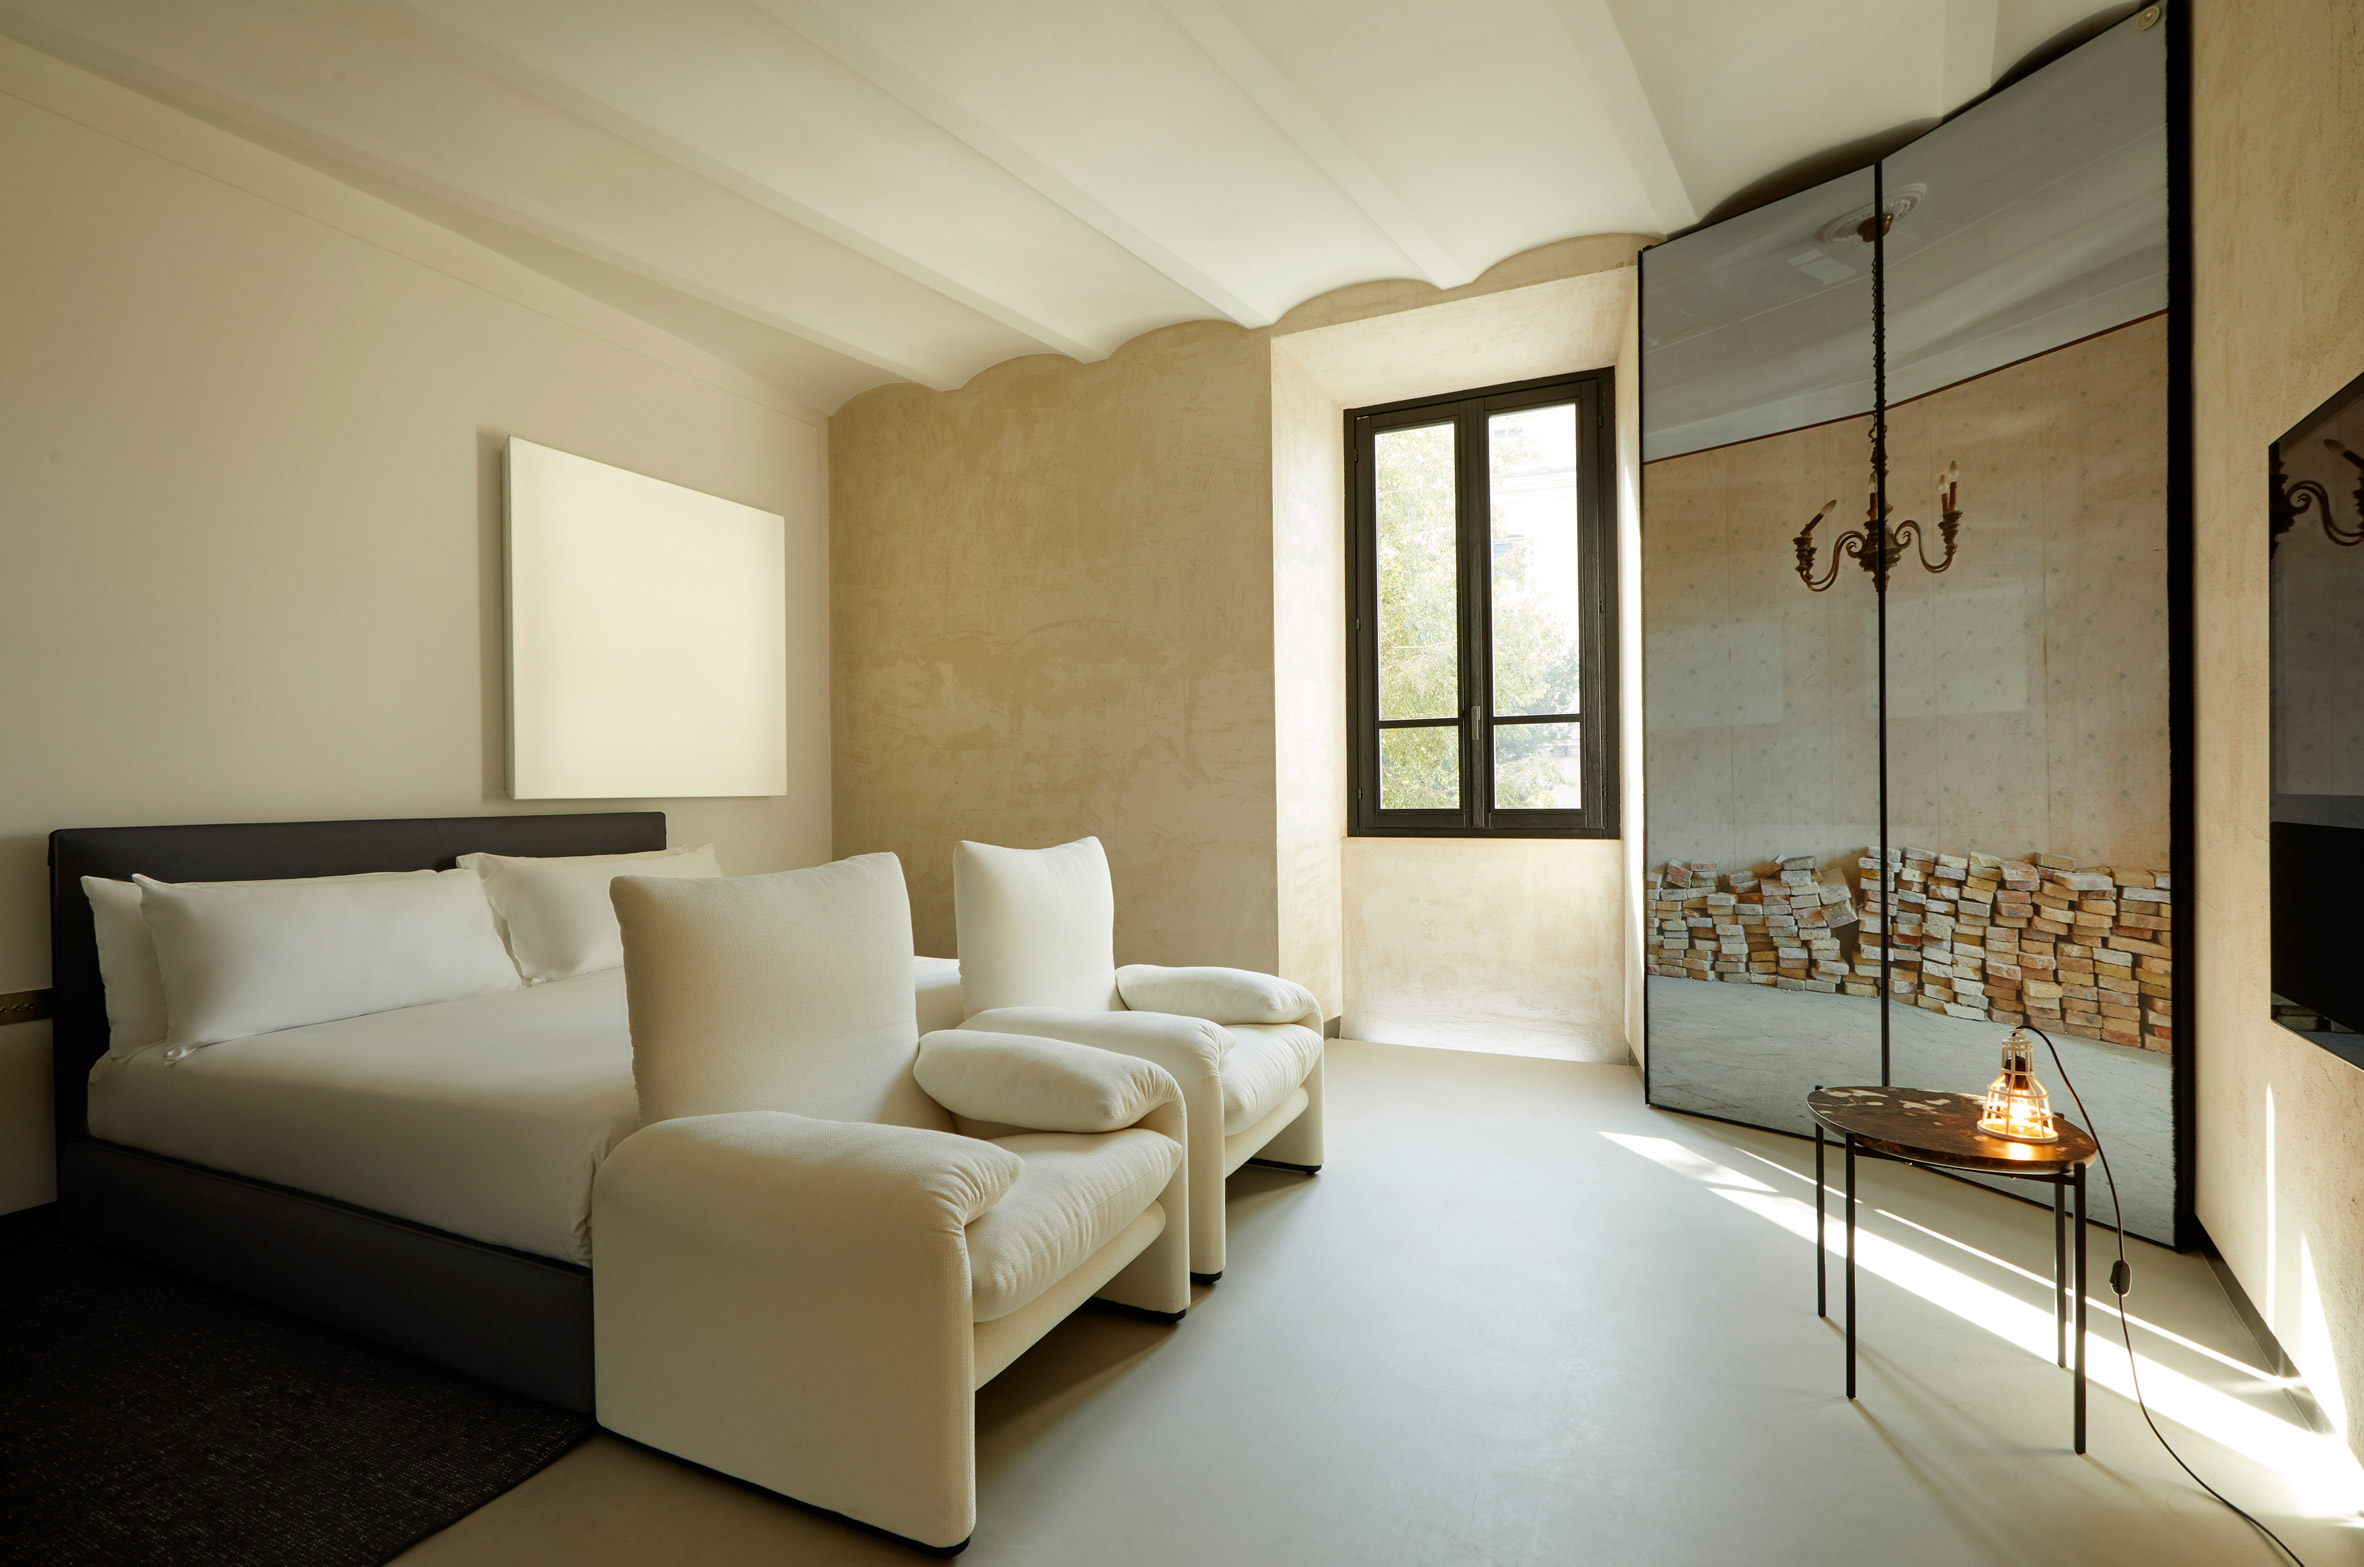 Palazzo - The Rooms of Rome